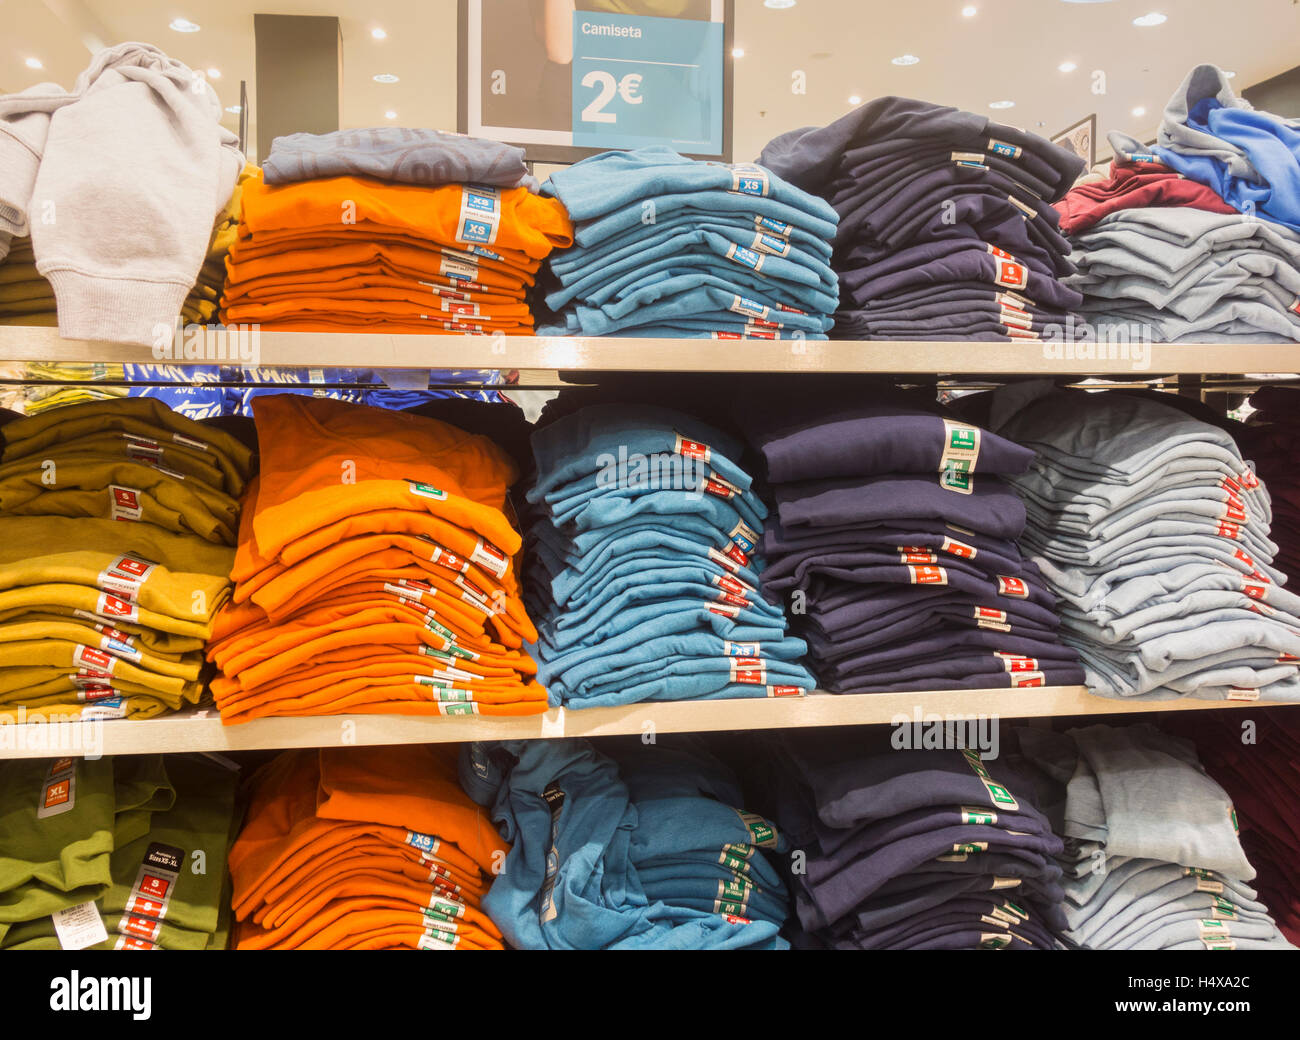 Two Euro T shirts in Primark store in Spain - Stock Image